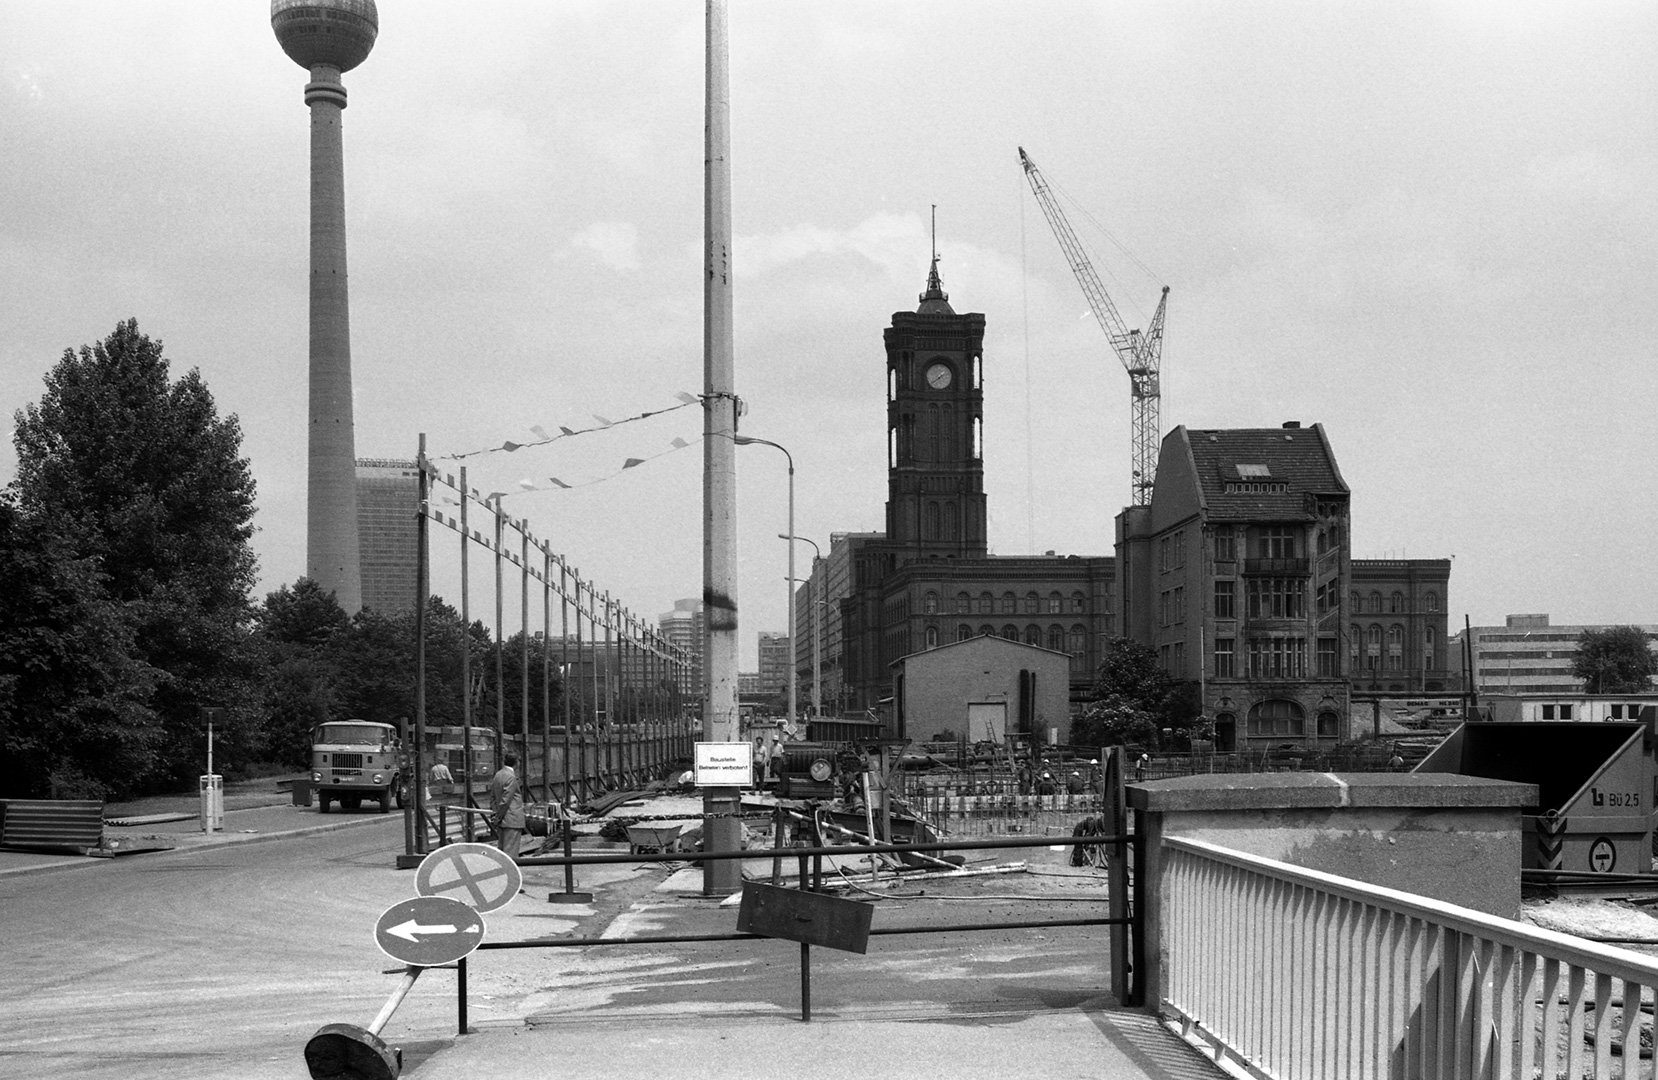 east-berlin-1983_14_Berlino-Est-36